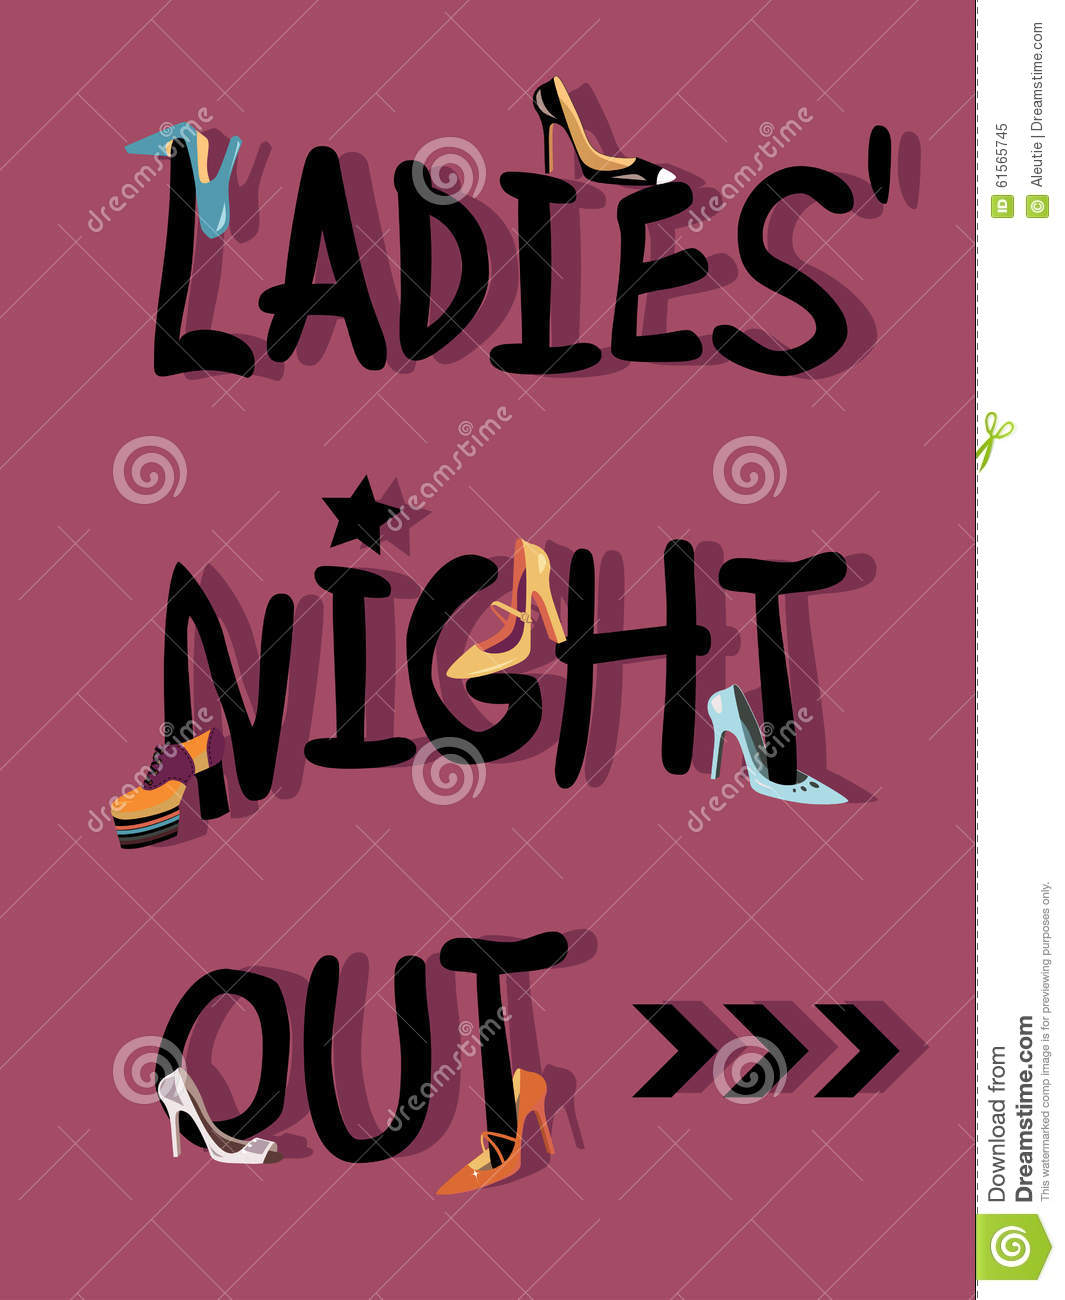 Ladies  Night Out Invitations Card Design With Shoes Eps 8 Vector